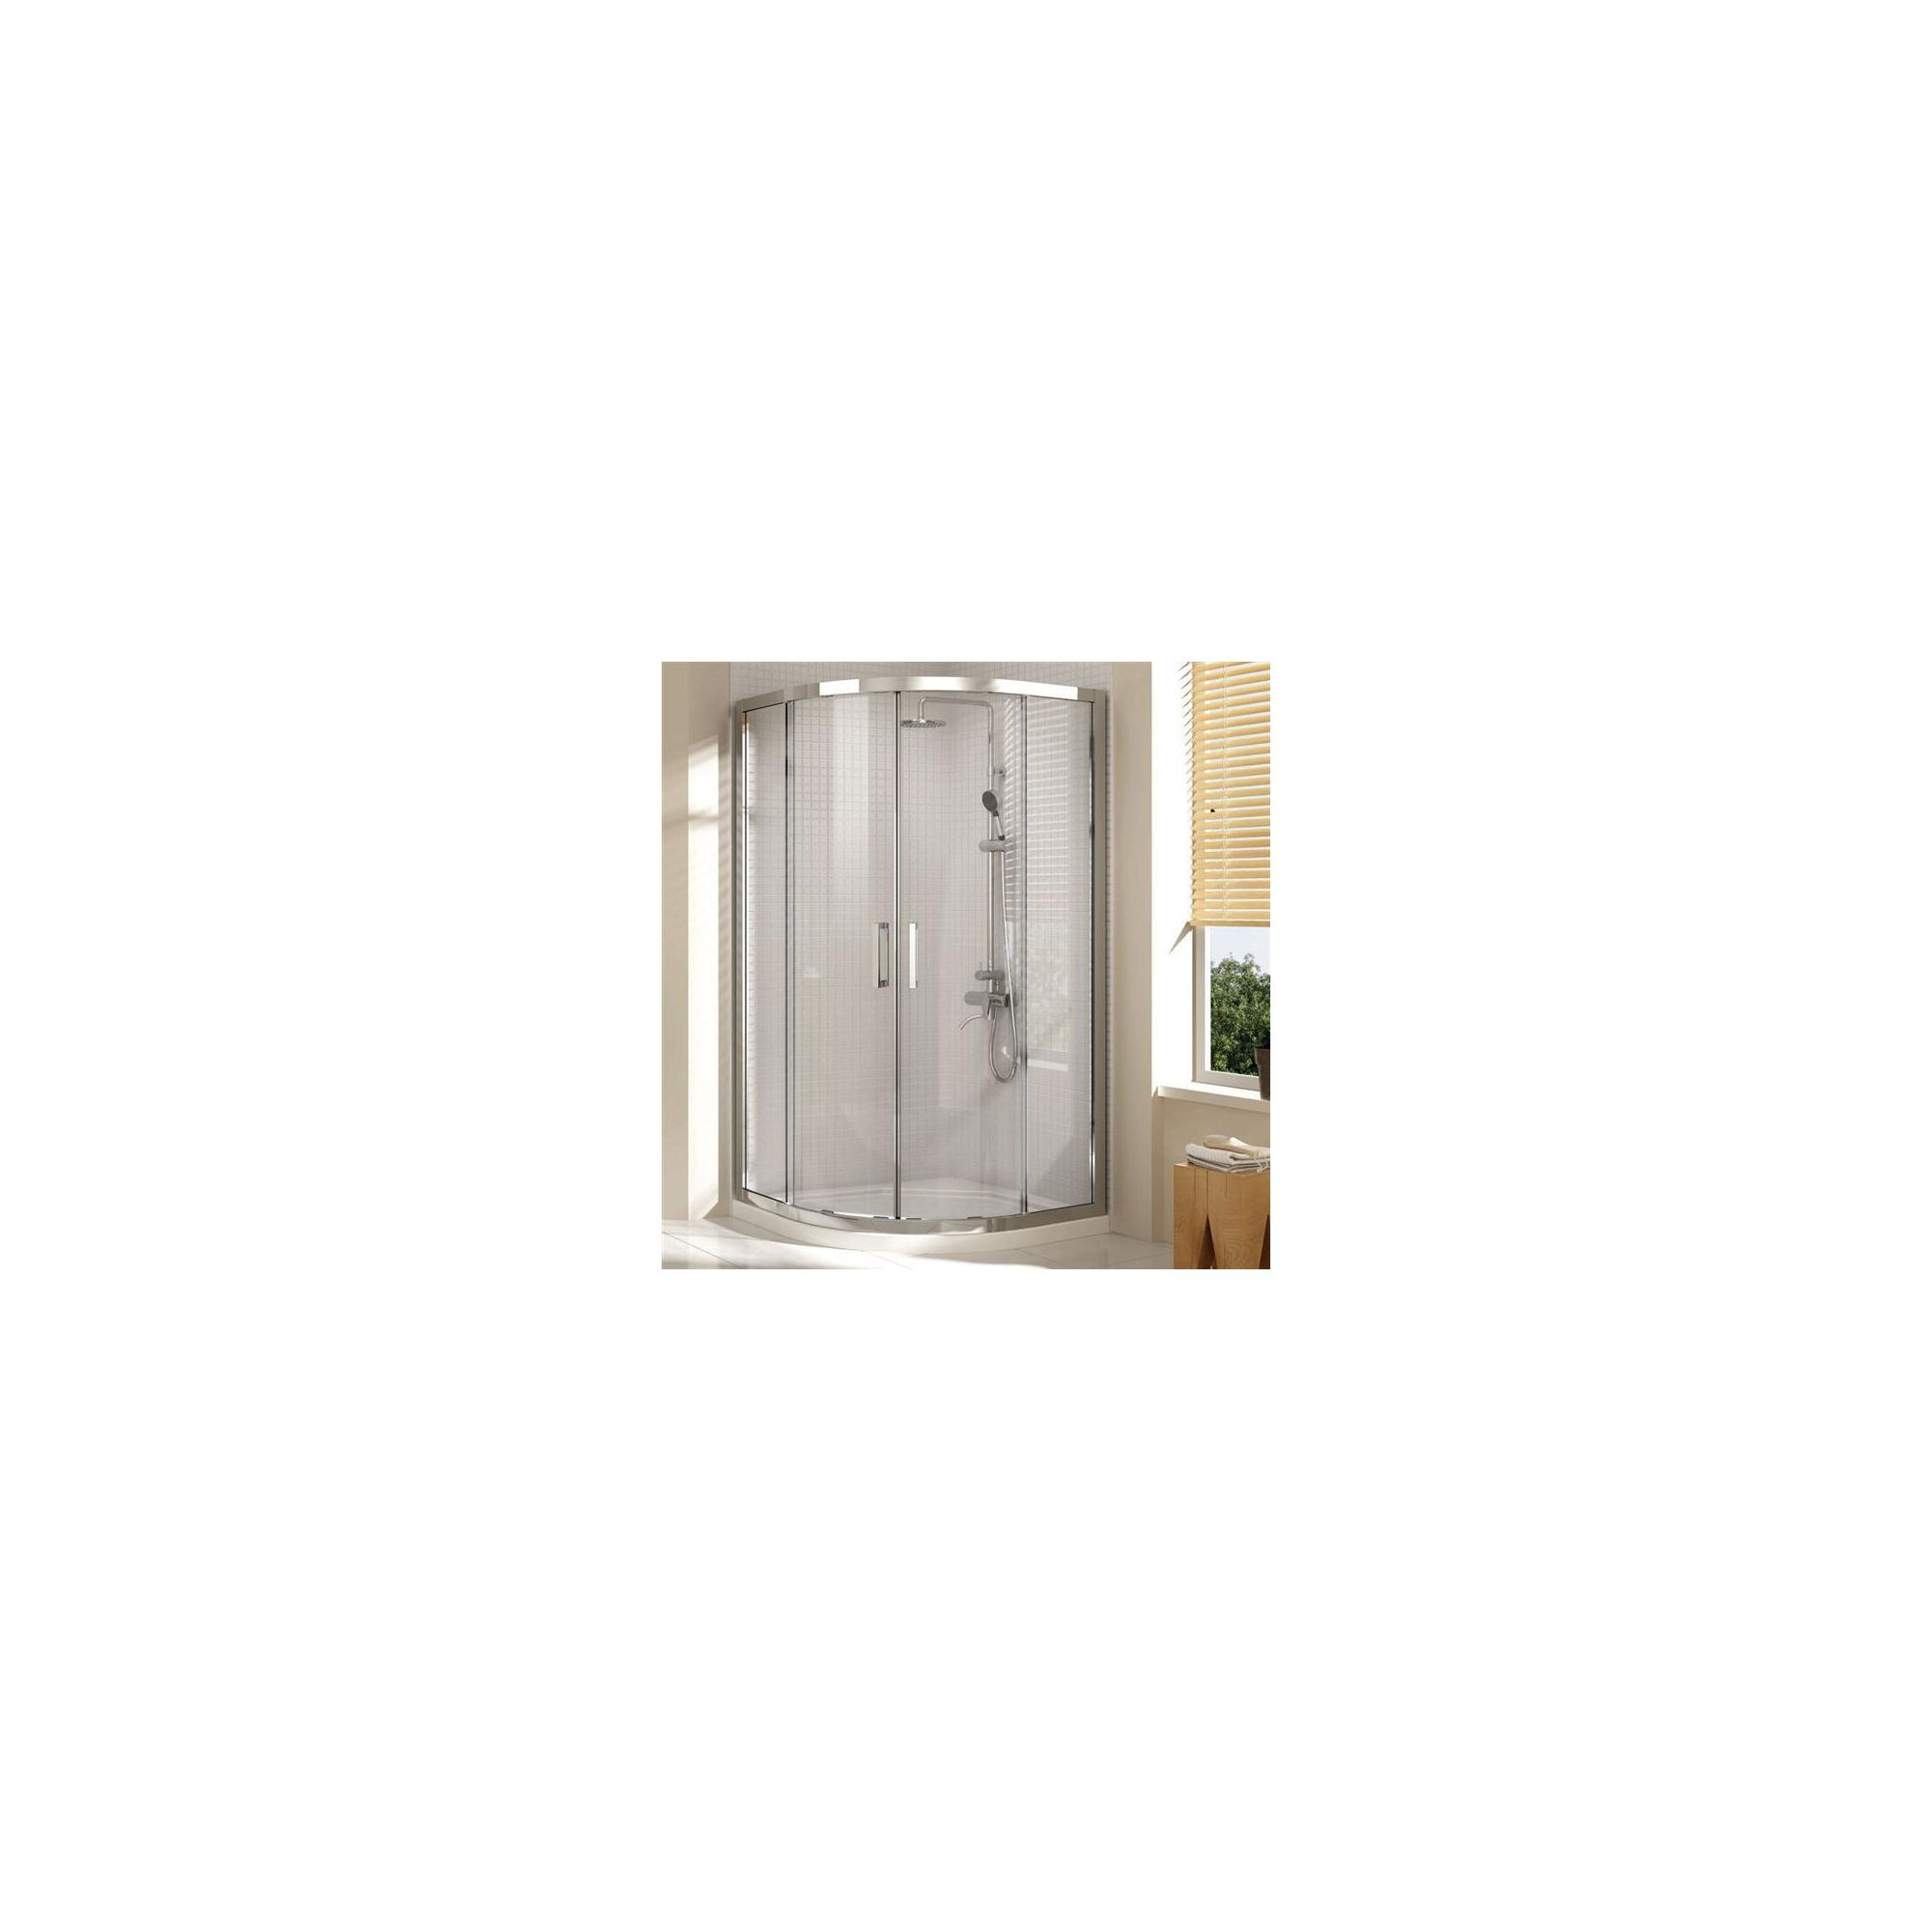 Merlyn Vivid Eight Quadrant Shower Door, 800mm x 800mm, 8mm Glass at Tesco Direct